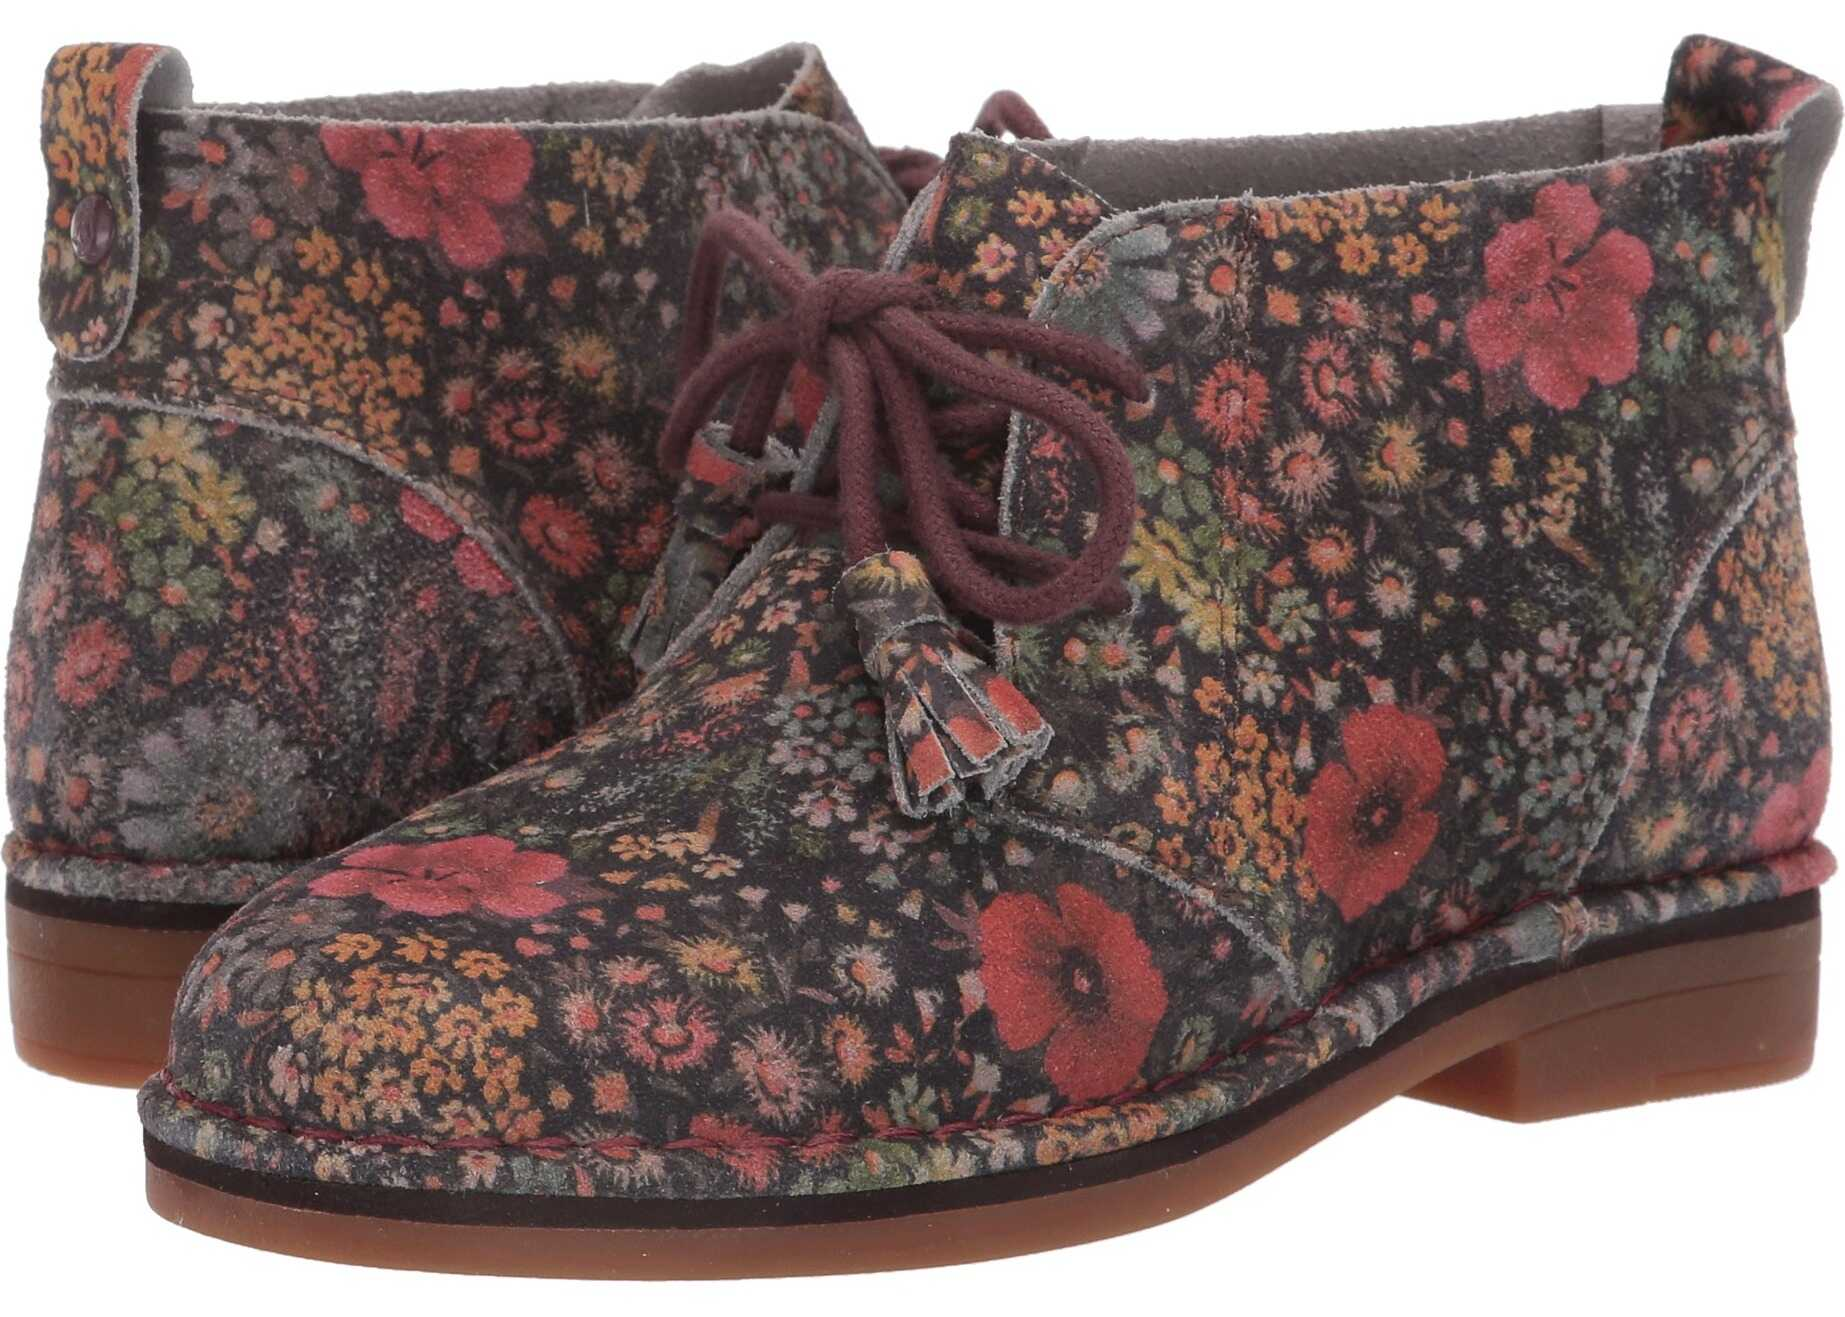 Hush Puppies Cyra Catelyn Black Floral Suede